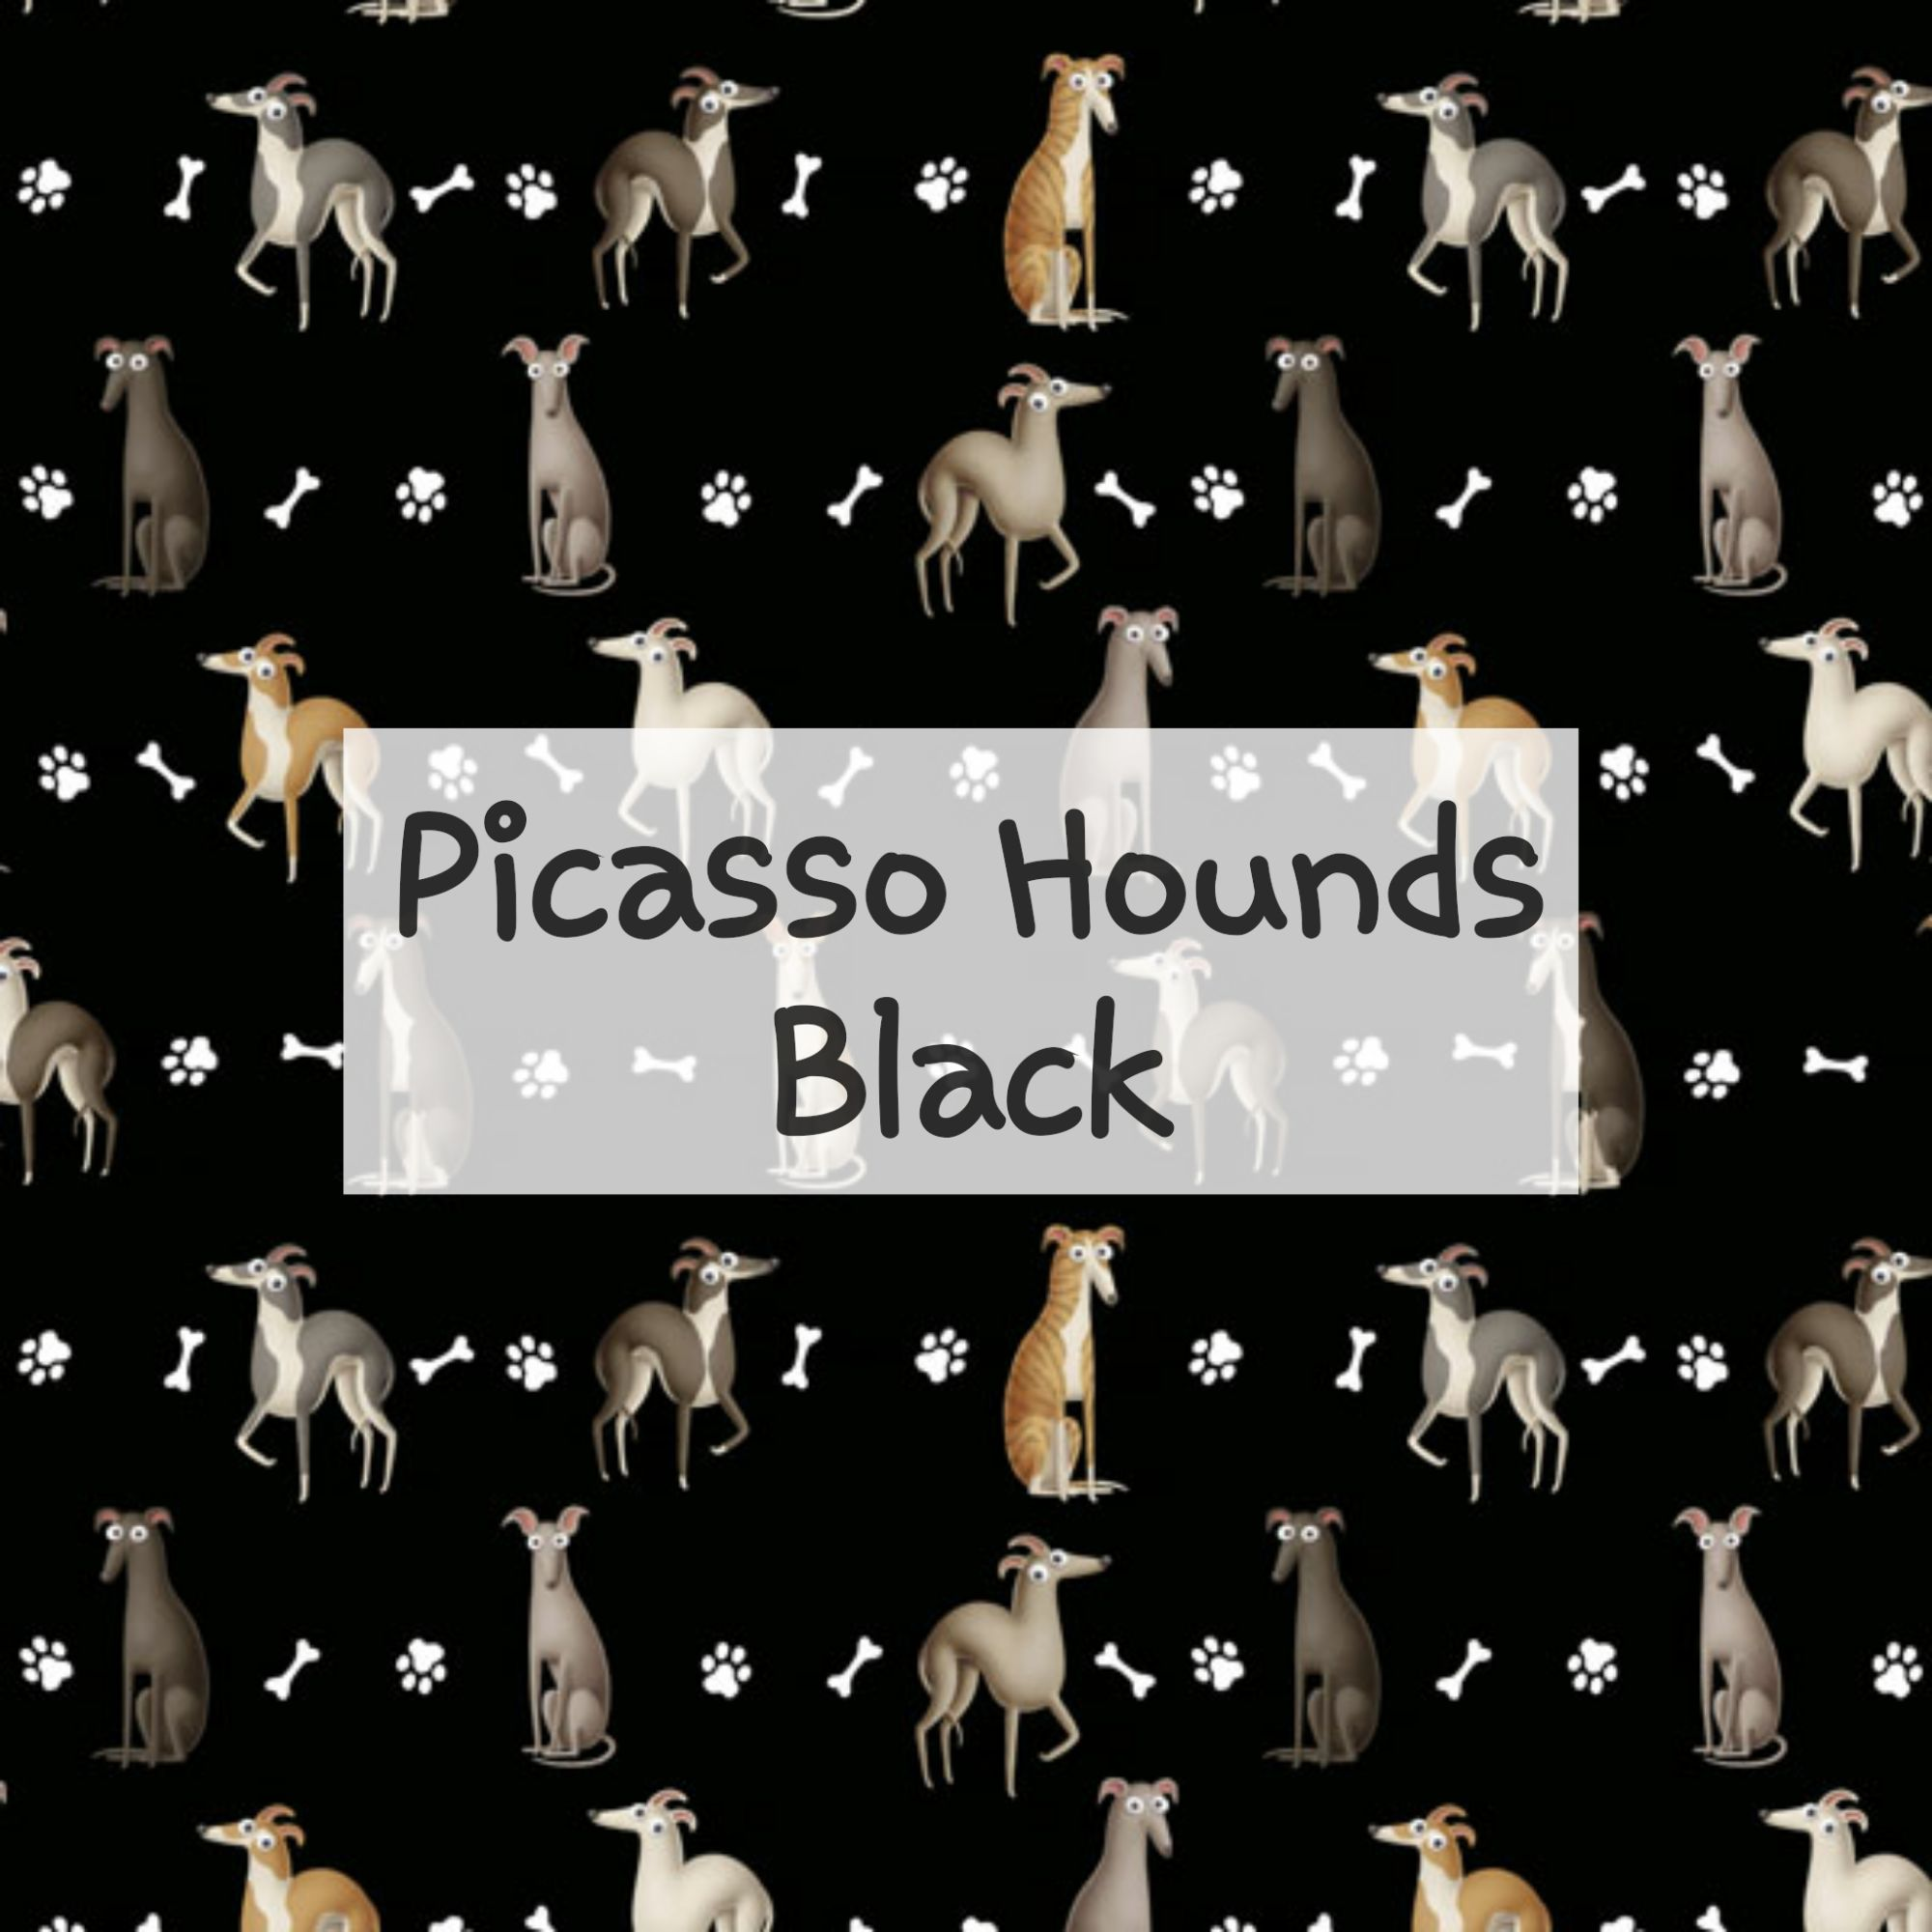 Picasso Hounds Black